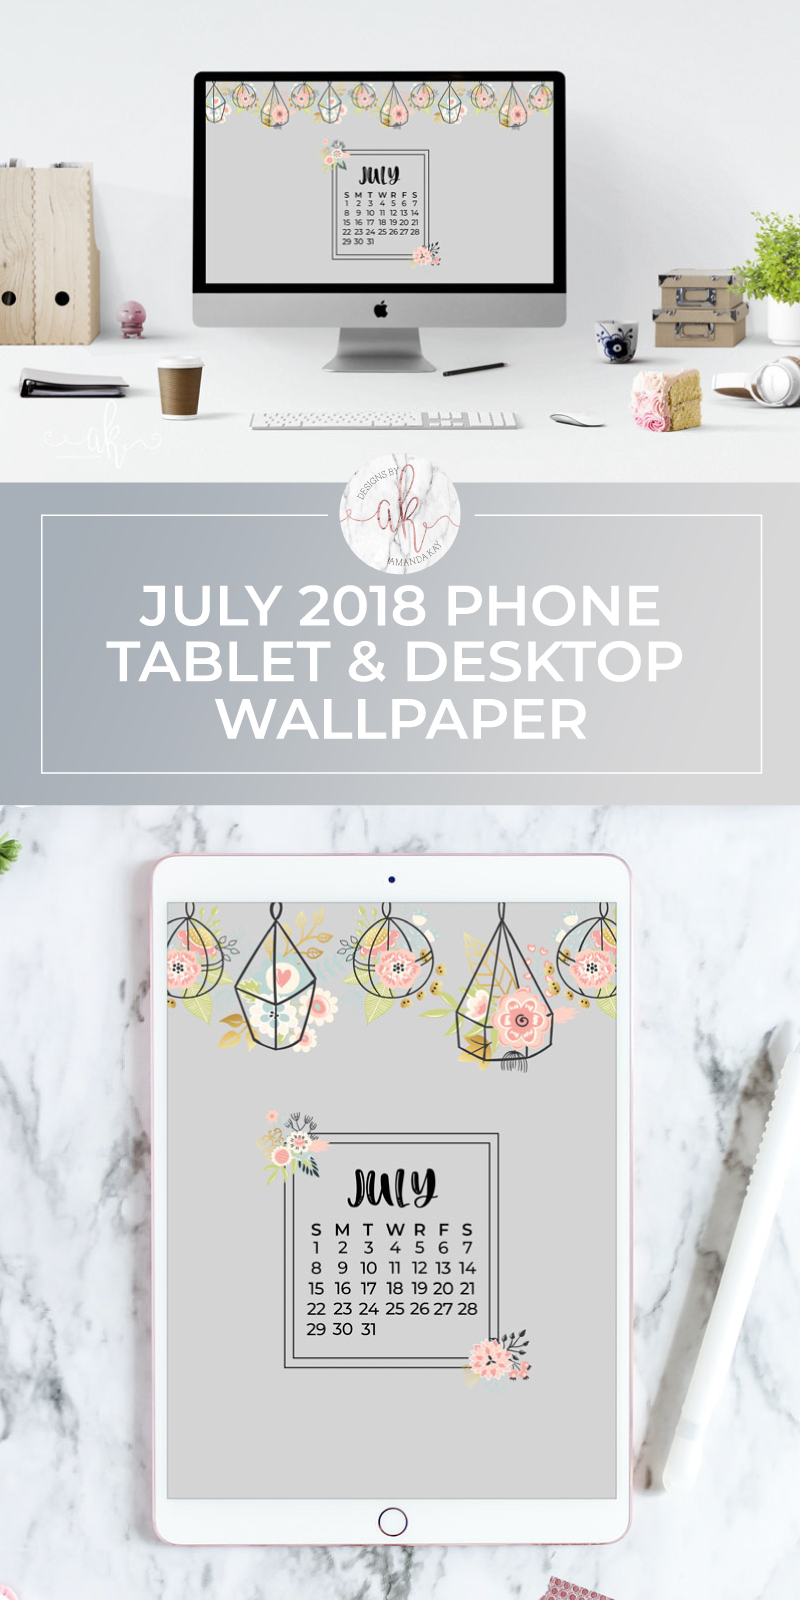 Jazz up your computer, phone or tablet with these free July calendar wallpapers!   #freewallpaper #julywallpaper #computerwallpaper #phonewallpaper #freedownload #byamandakay